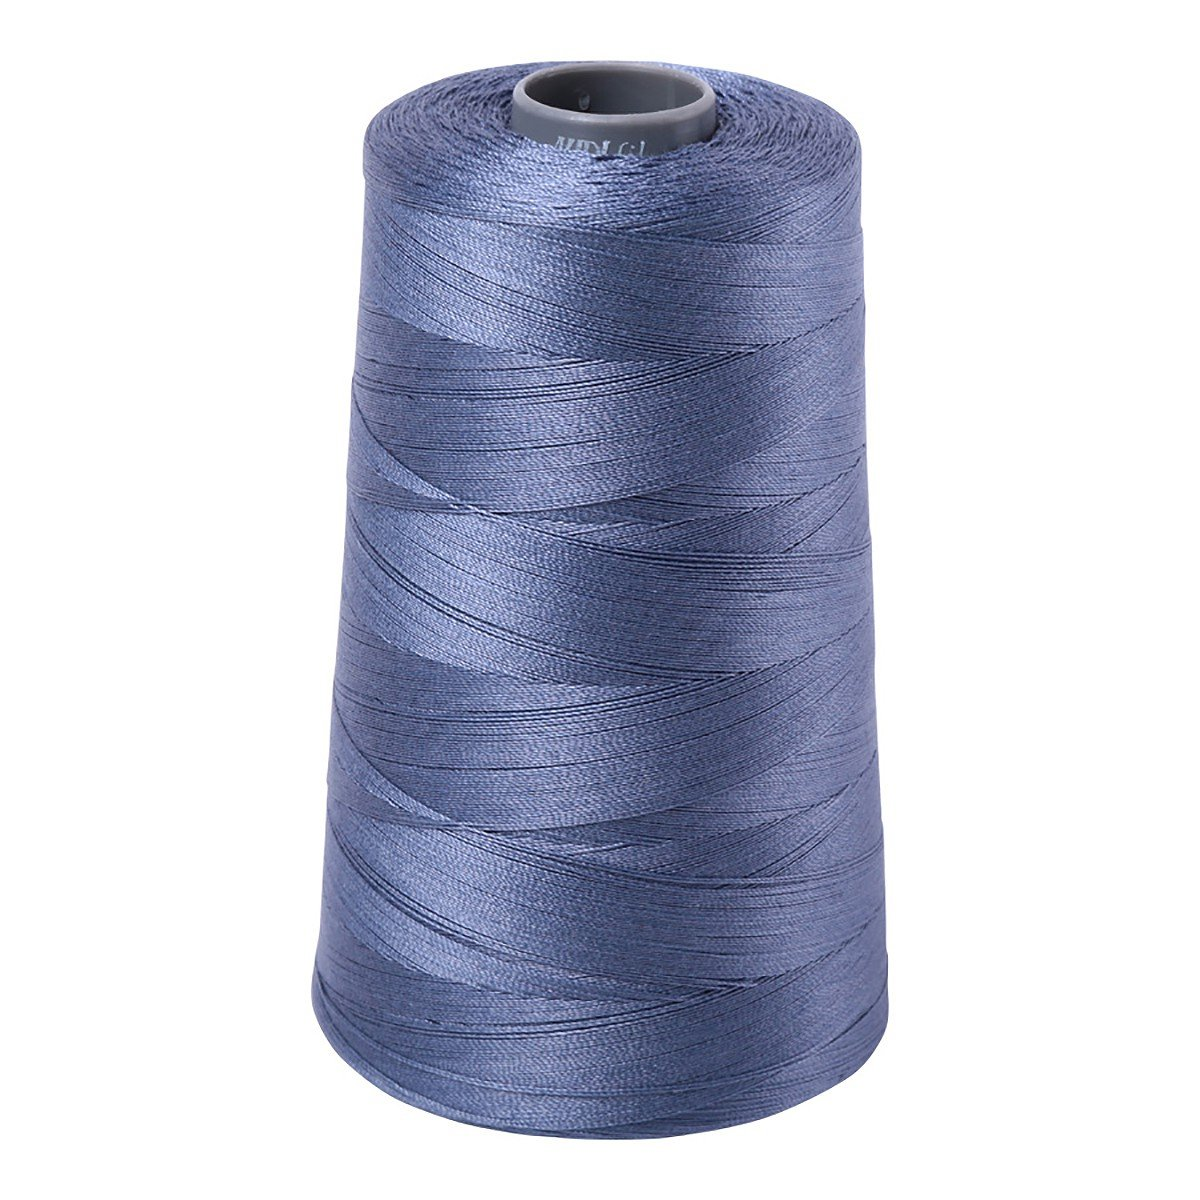 Mako (Cotton) Embroidery Thread 28wt 3609yds Dark Grey Blue